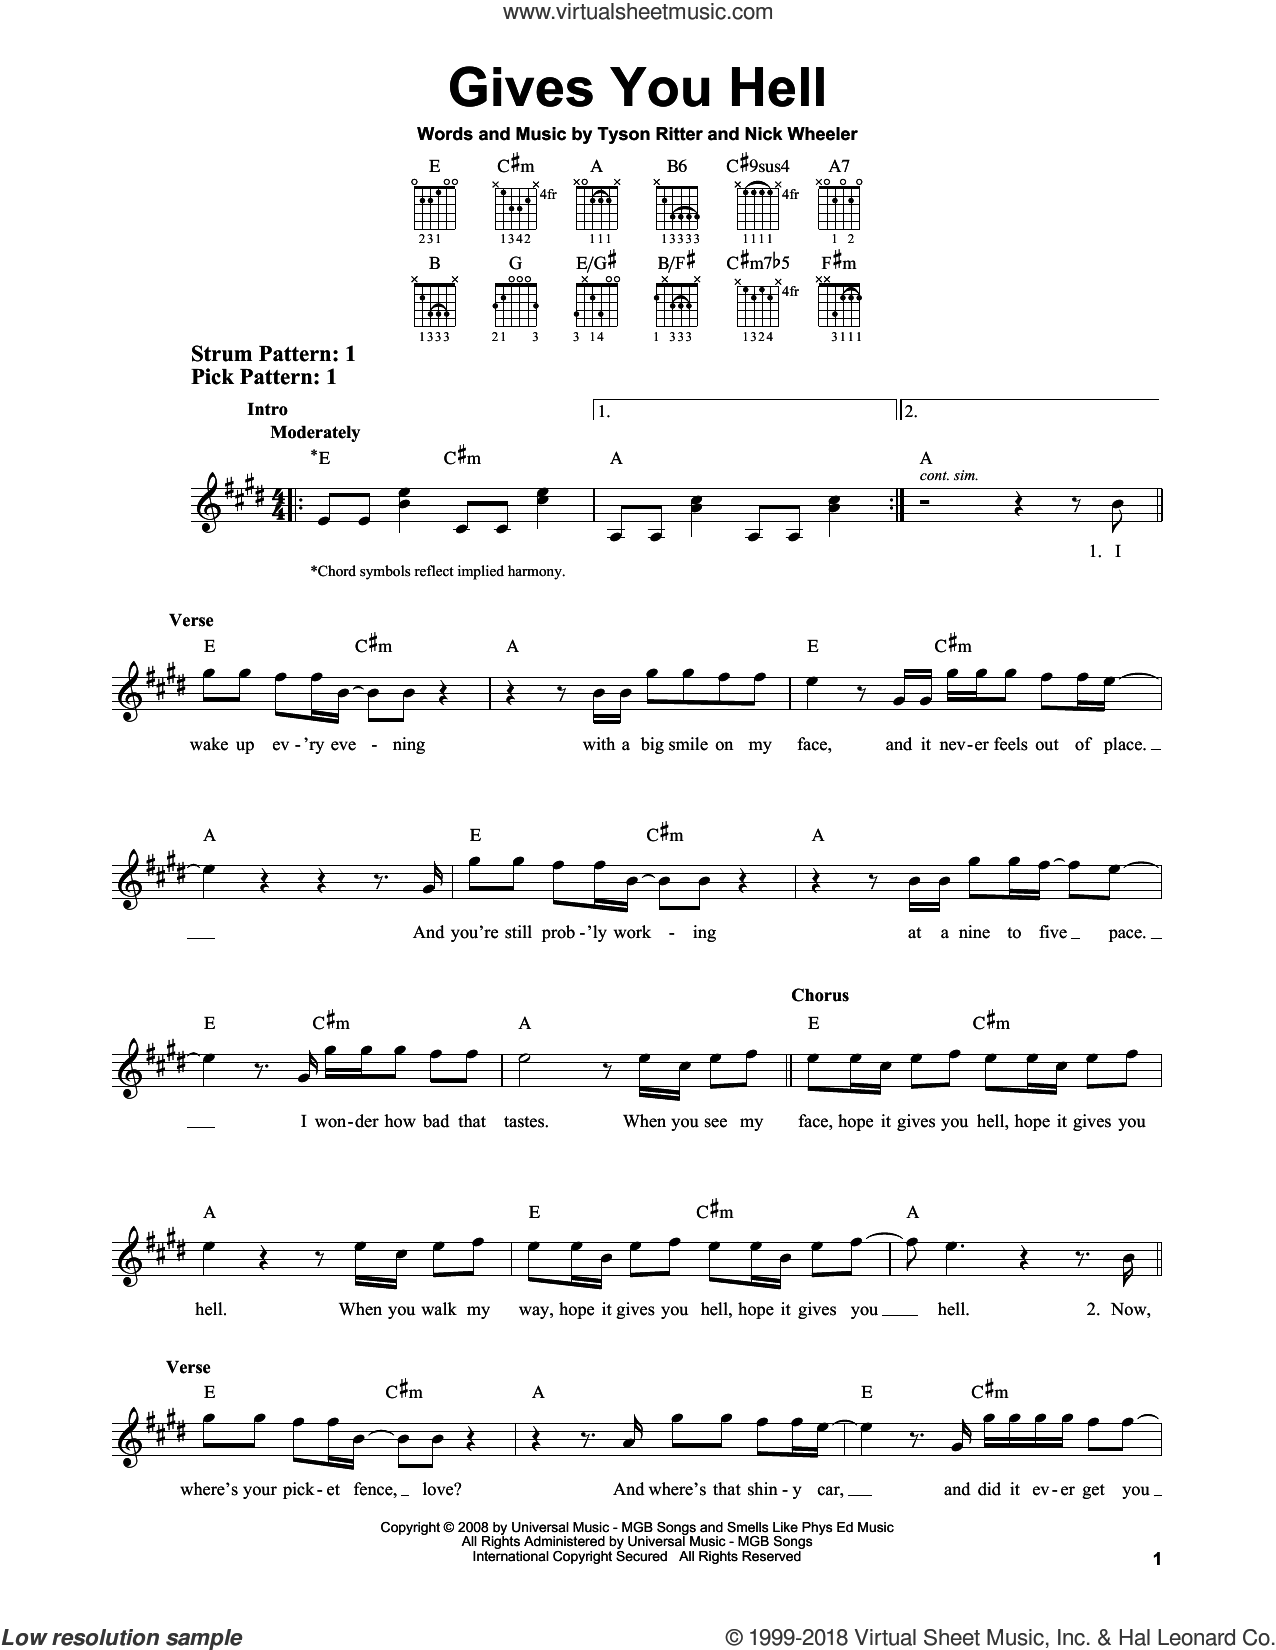 Gives You Hell sheet music for guitar solo (chords) by Tyson Ritter. Score Image Preview.